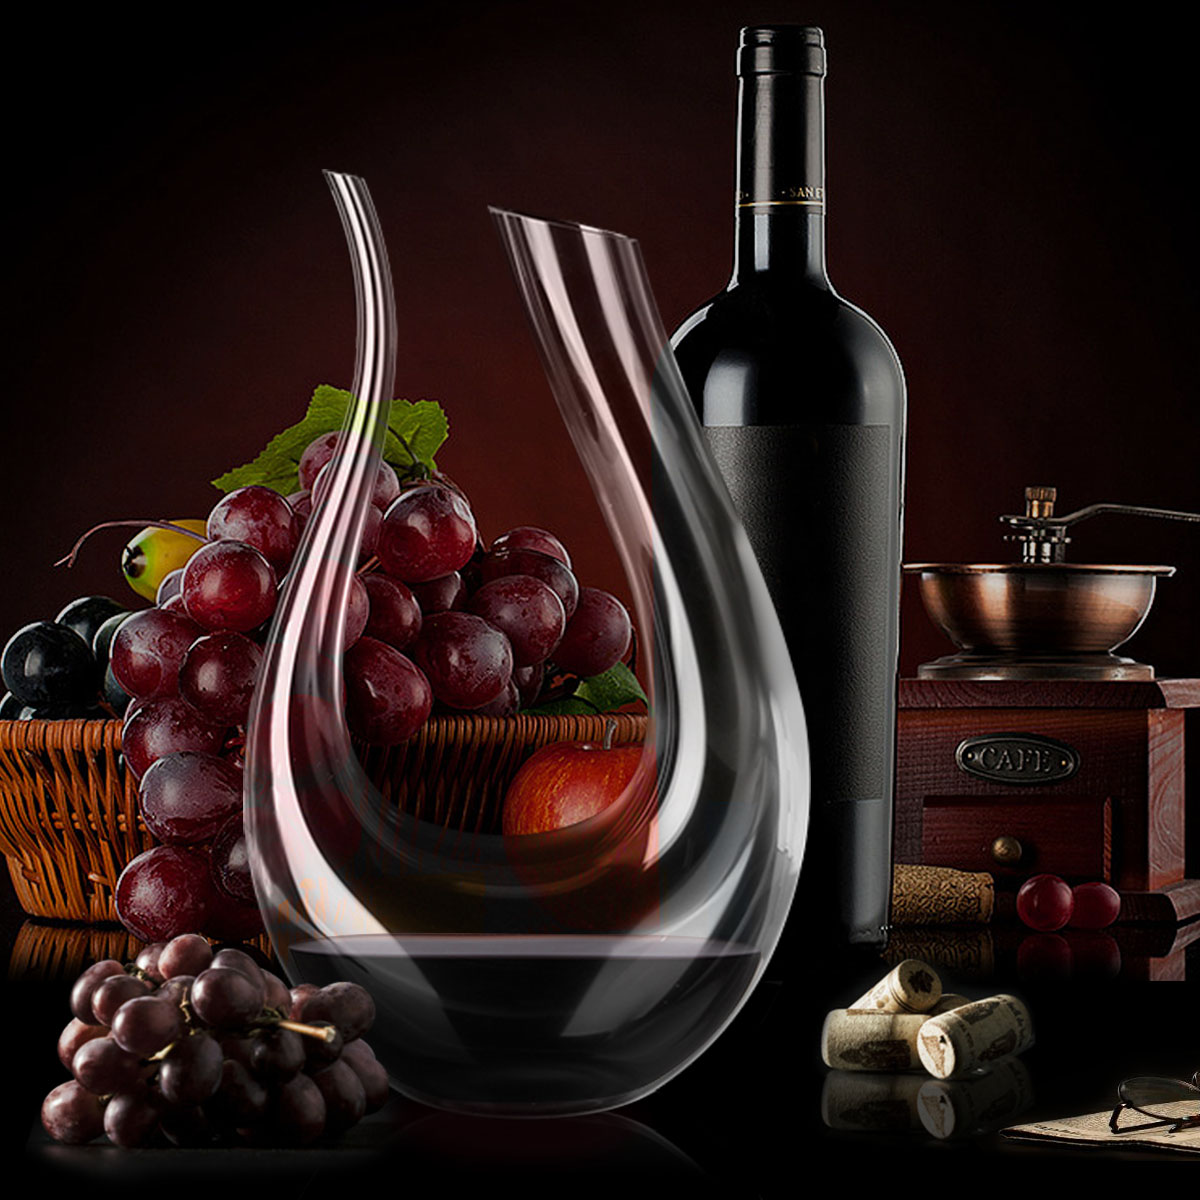 YKPuii 1500ML Big Decanter Handmade Crystal Red Wine Brandy Champagne Glasses Decanter Bottle Jug Pourer Aerator For Family Bar image